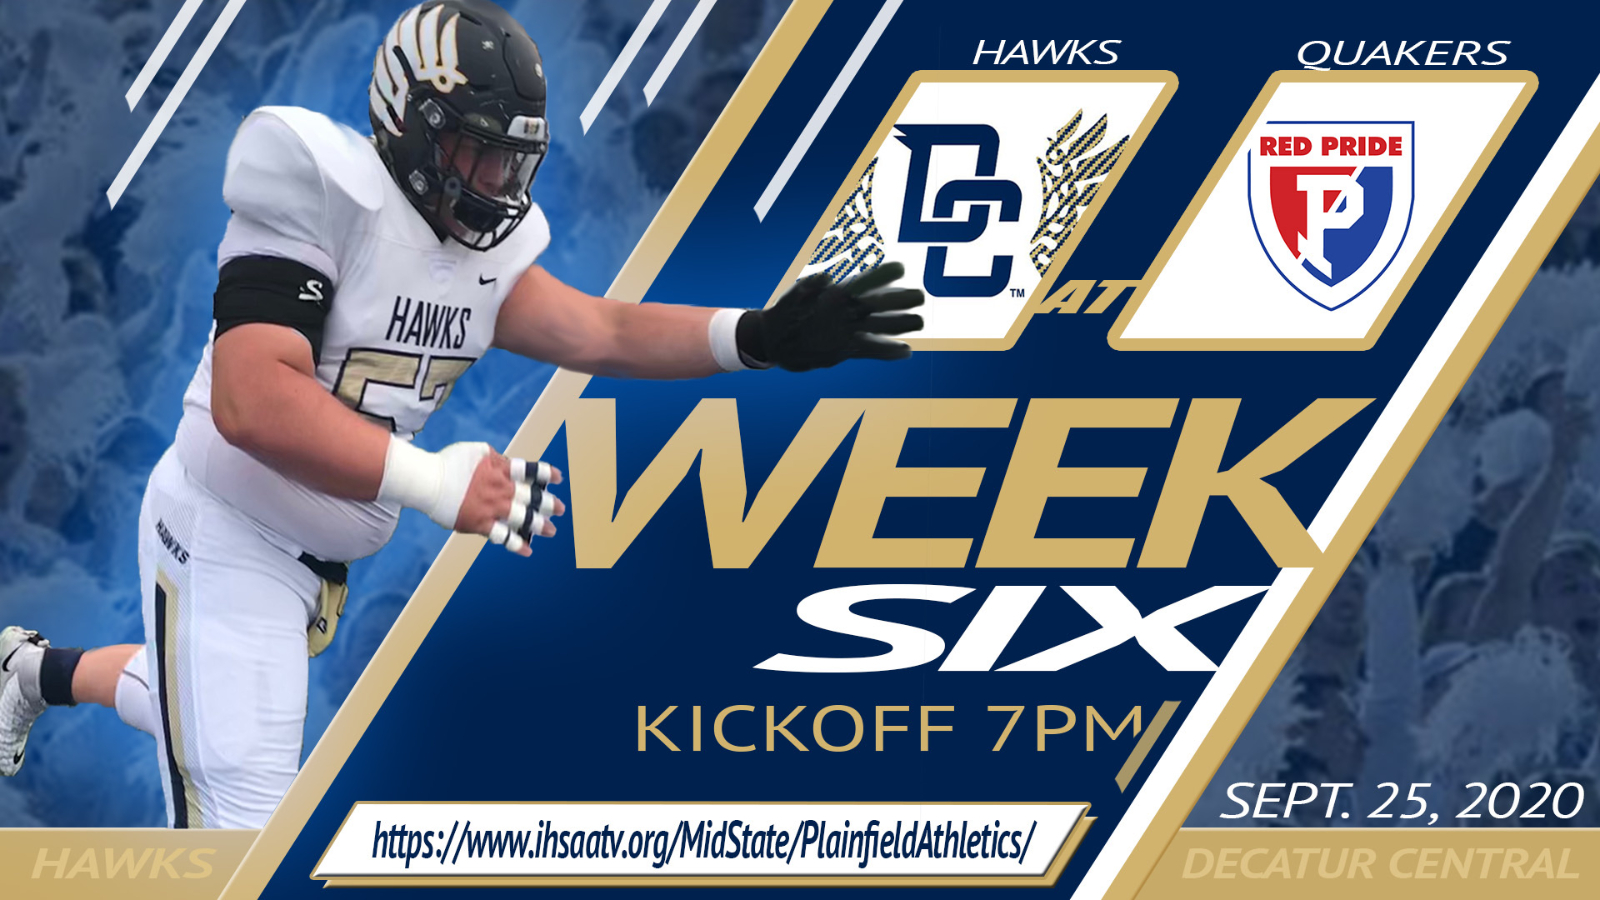 9/25/20- Decatur Central @ Plainfield- Varsity Football General Admission Tickets